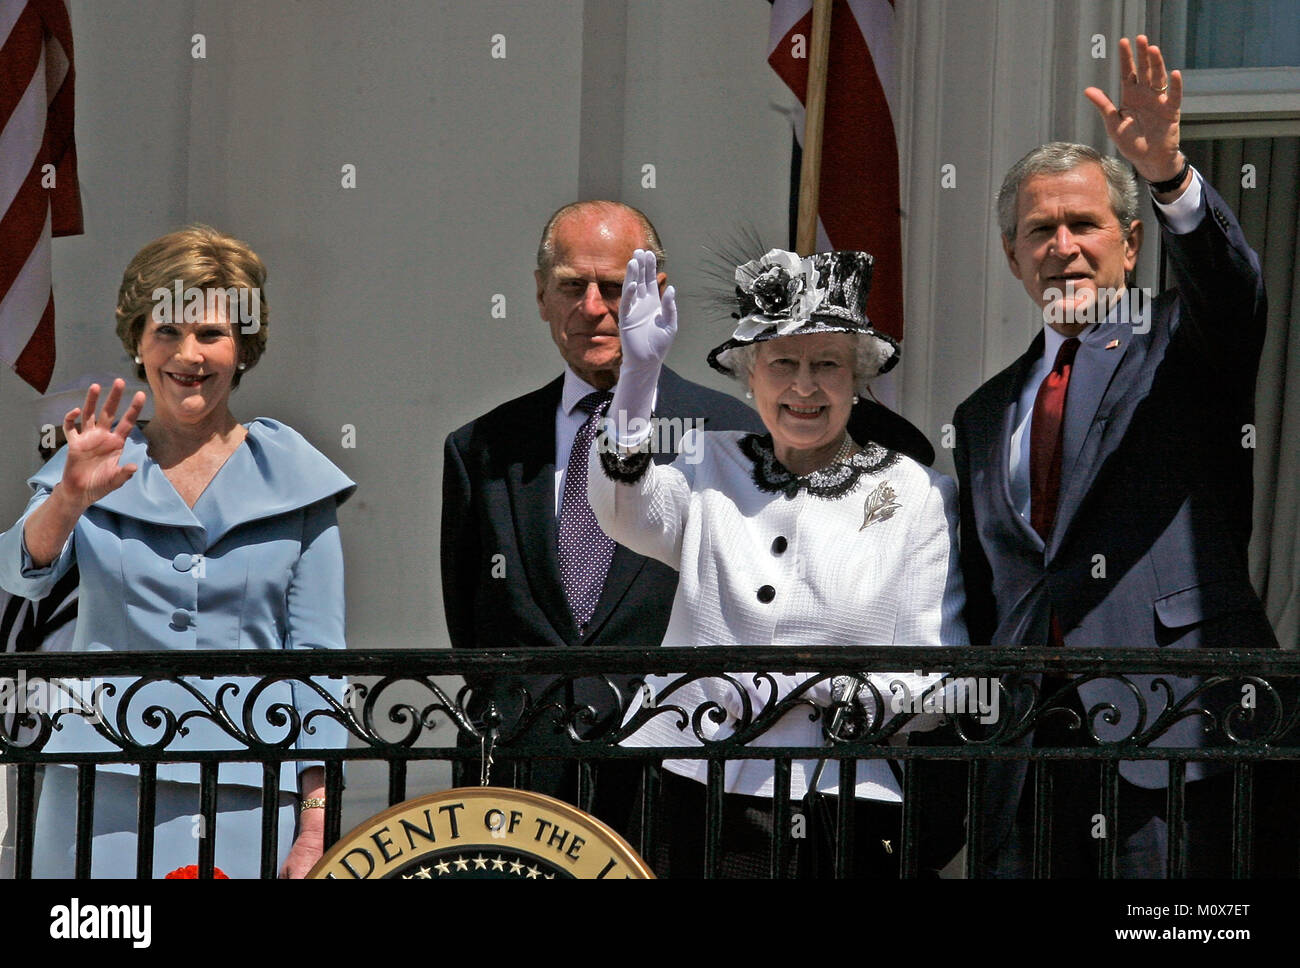 WASHINGTON - MAY 07:  HRH Queen Elizabeth II (2nd-R) waves while standing with U.S. President George W. Bush (R), - Stock Image